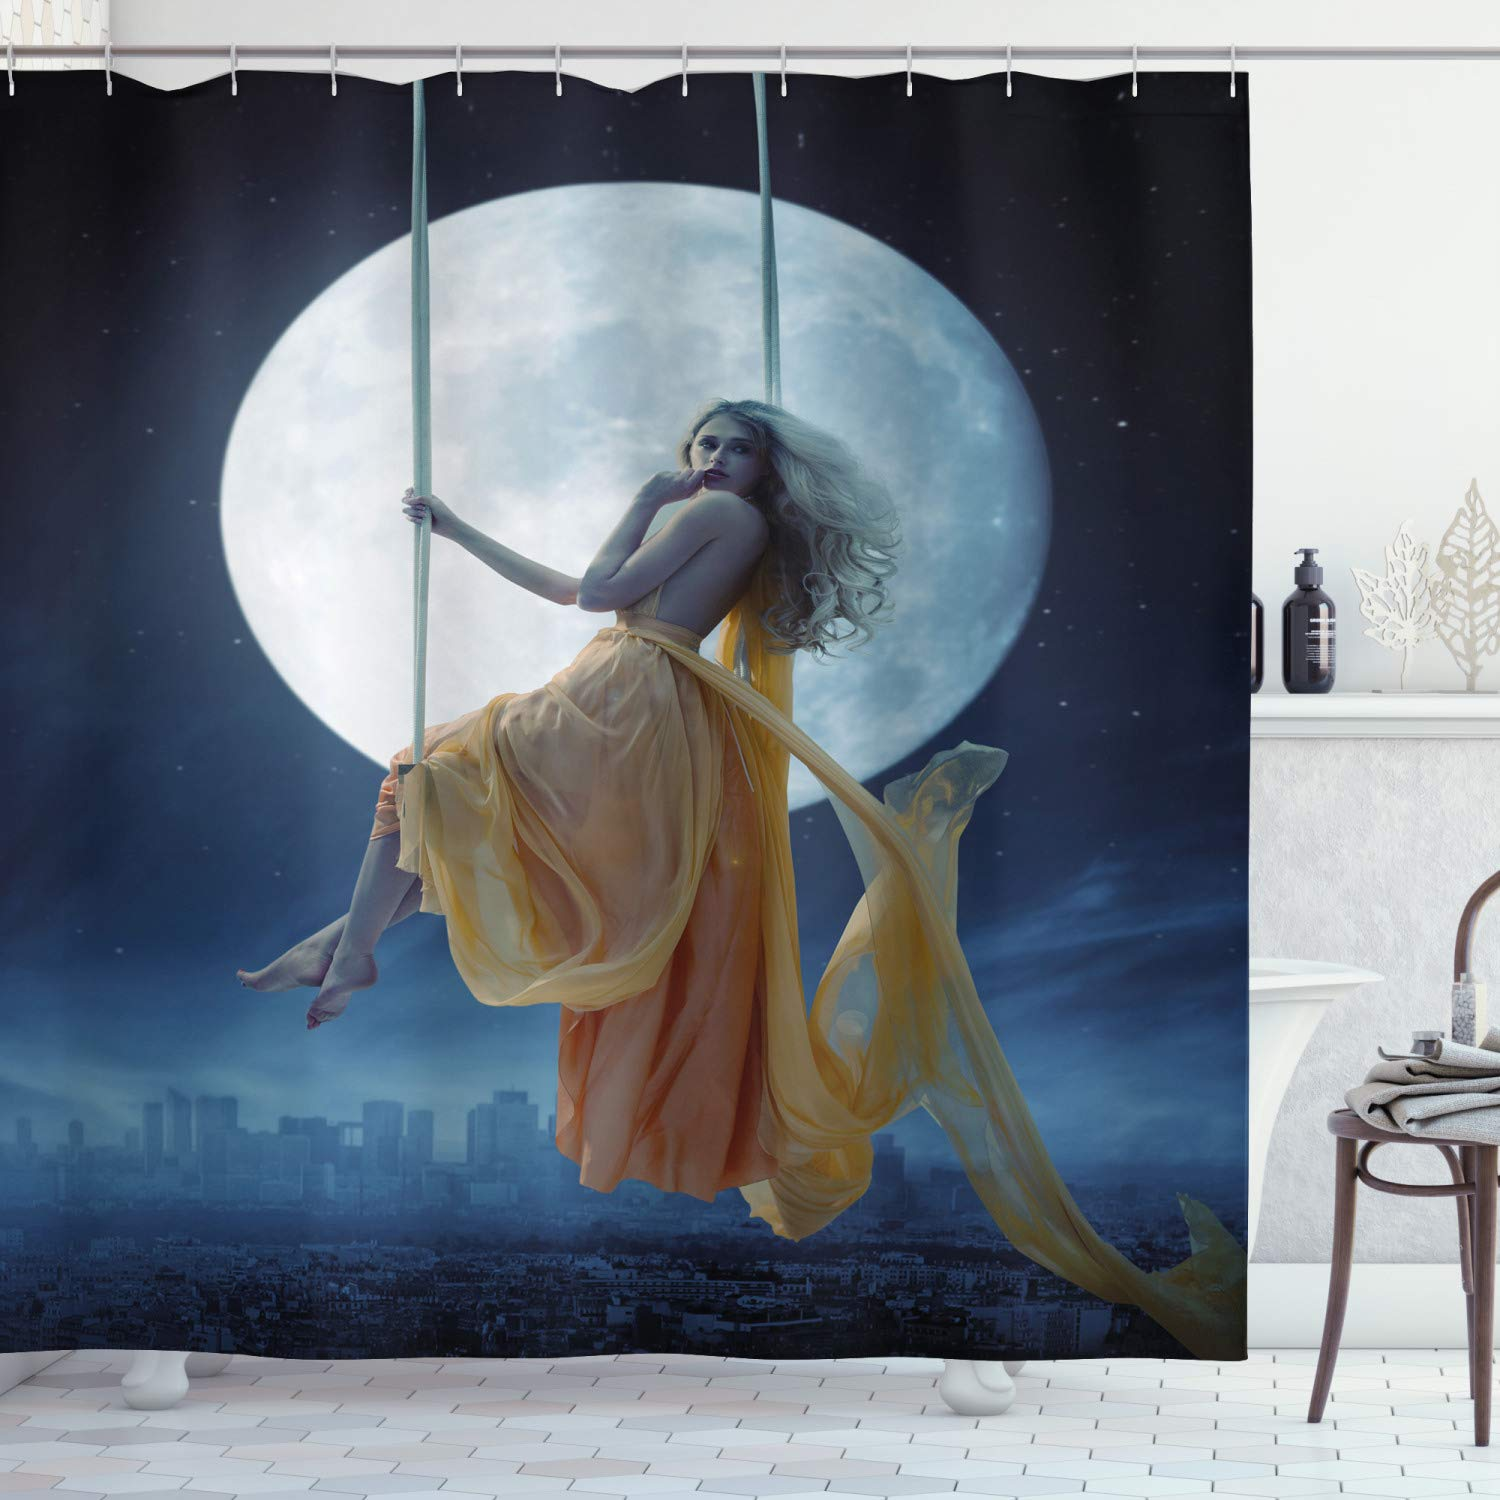 """Ambesonne Moon Shower Curtain, Yellow Haired Woman on a Swing in The Sky The Moon and The Buildings Print, Cloth Fabric Bathroom Decor Set with Hooks, 75"""" Long, Blue Yellow"""